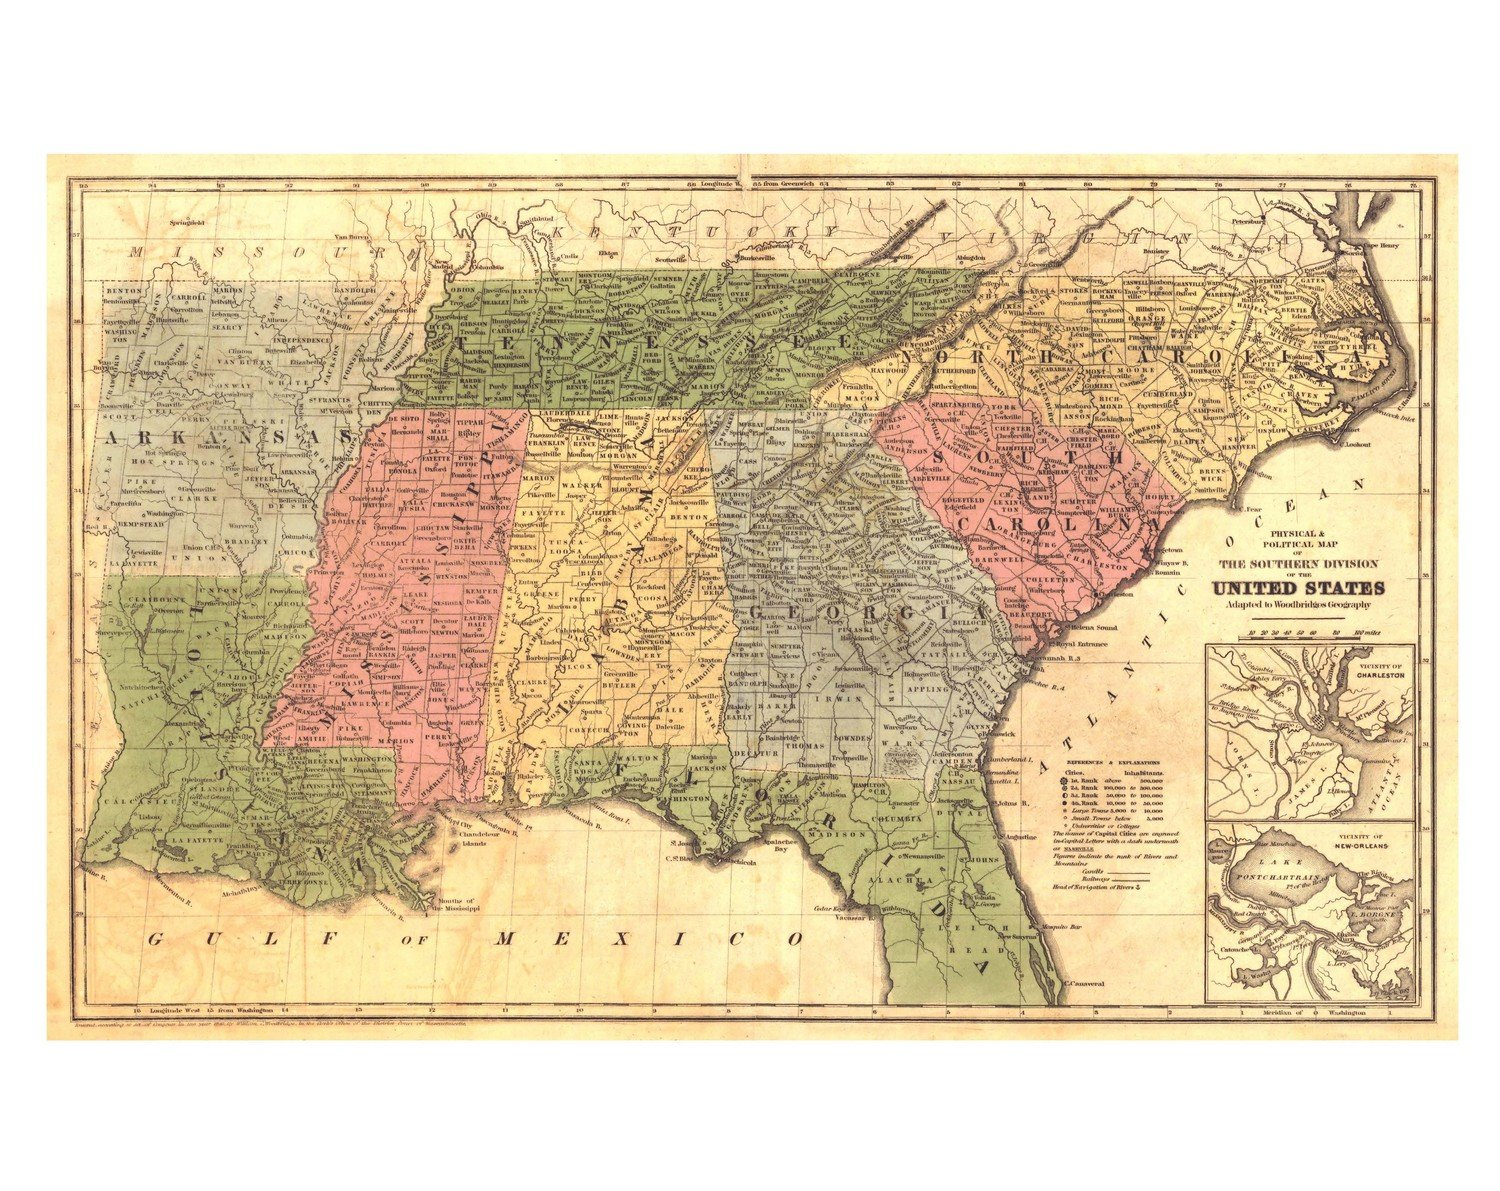 1845 Southern United States - Us-map-1845